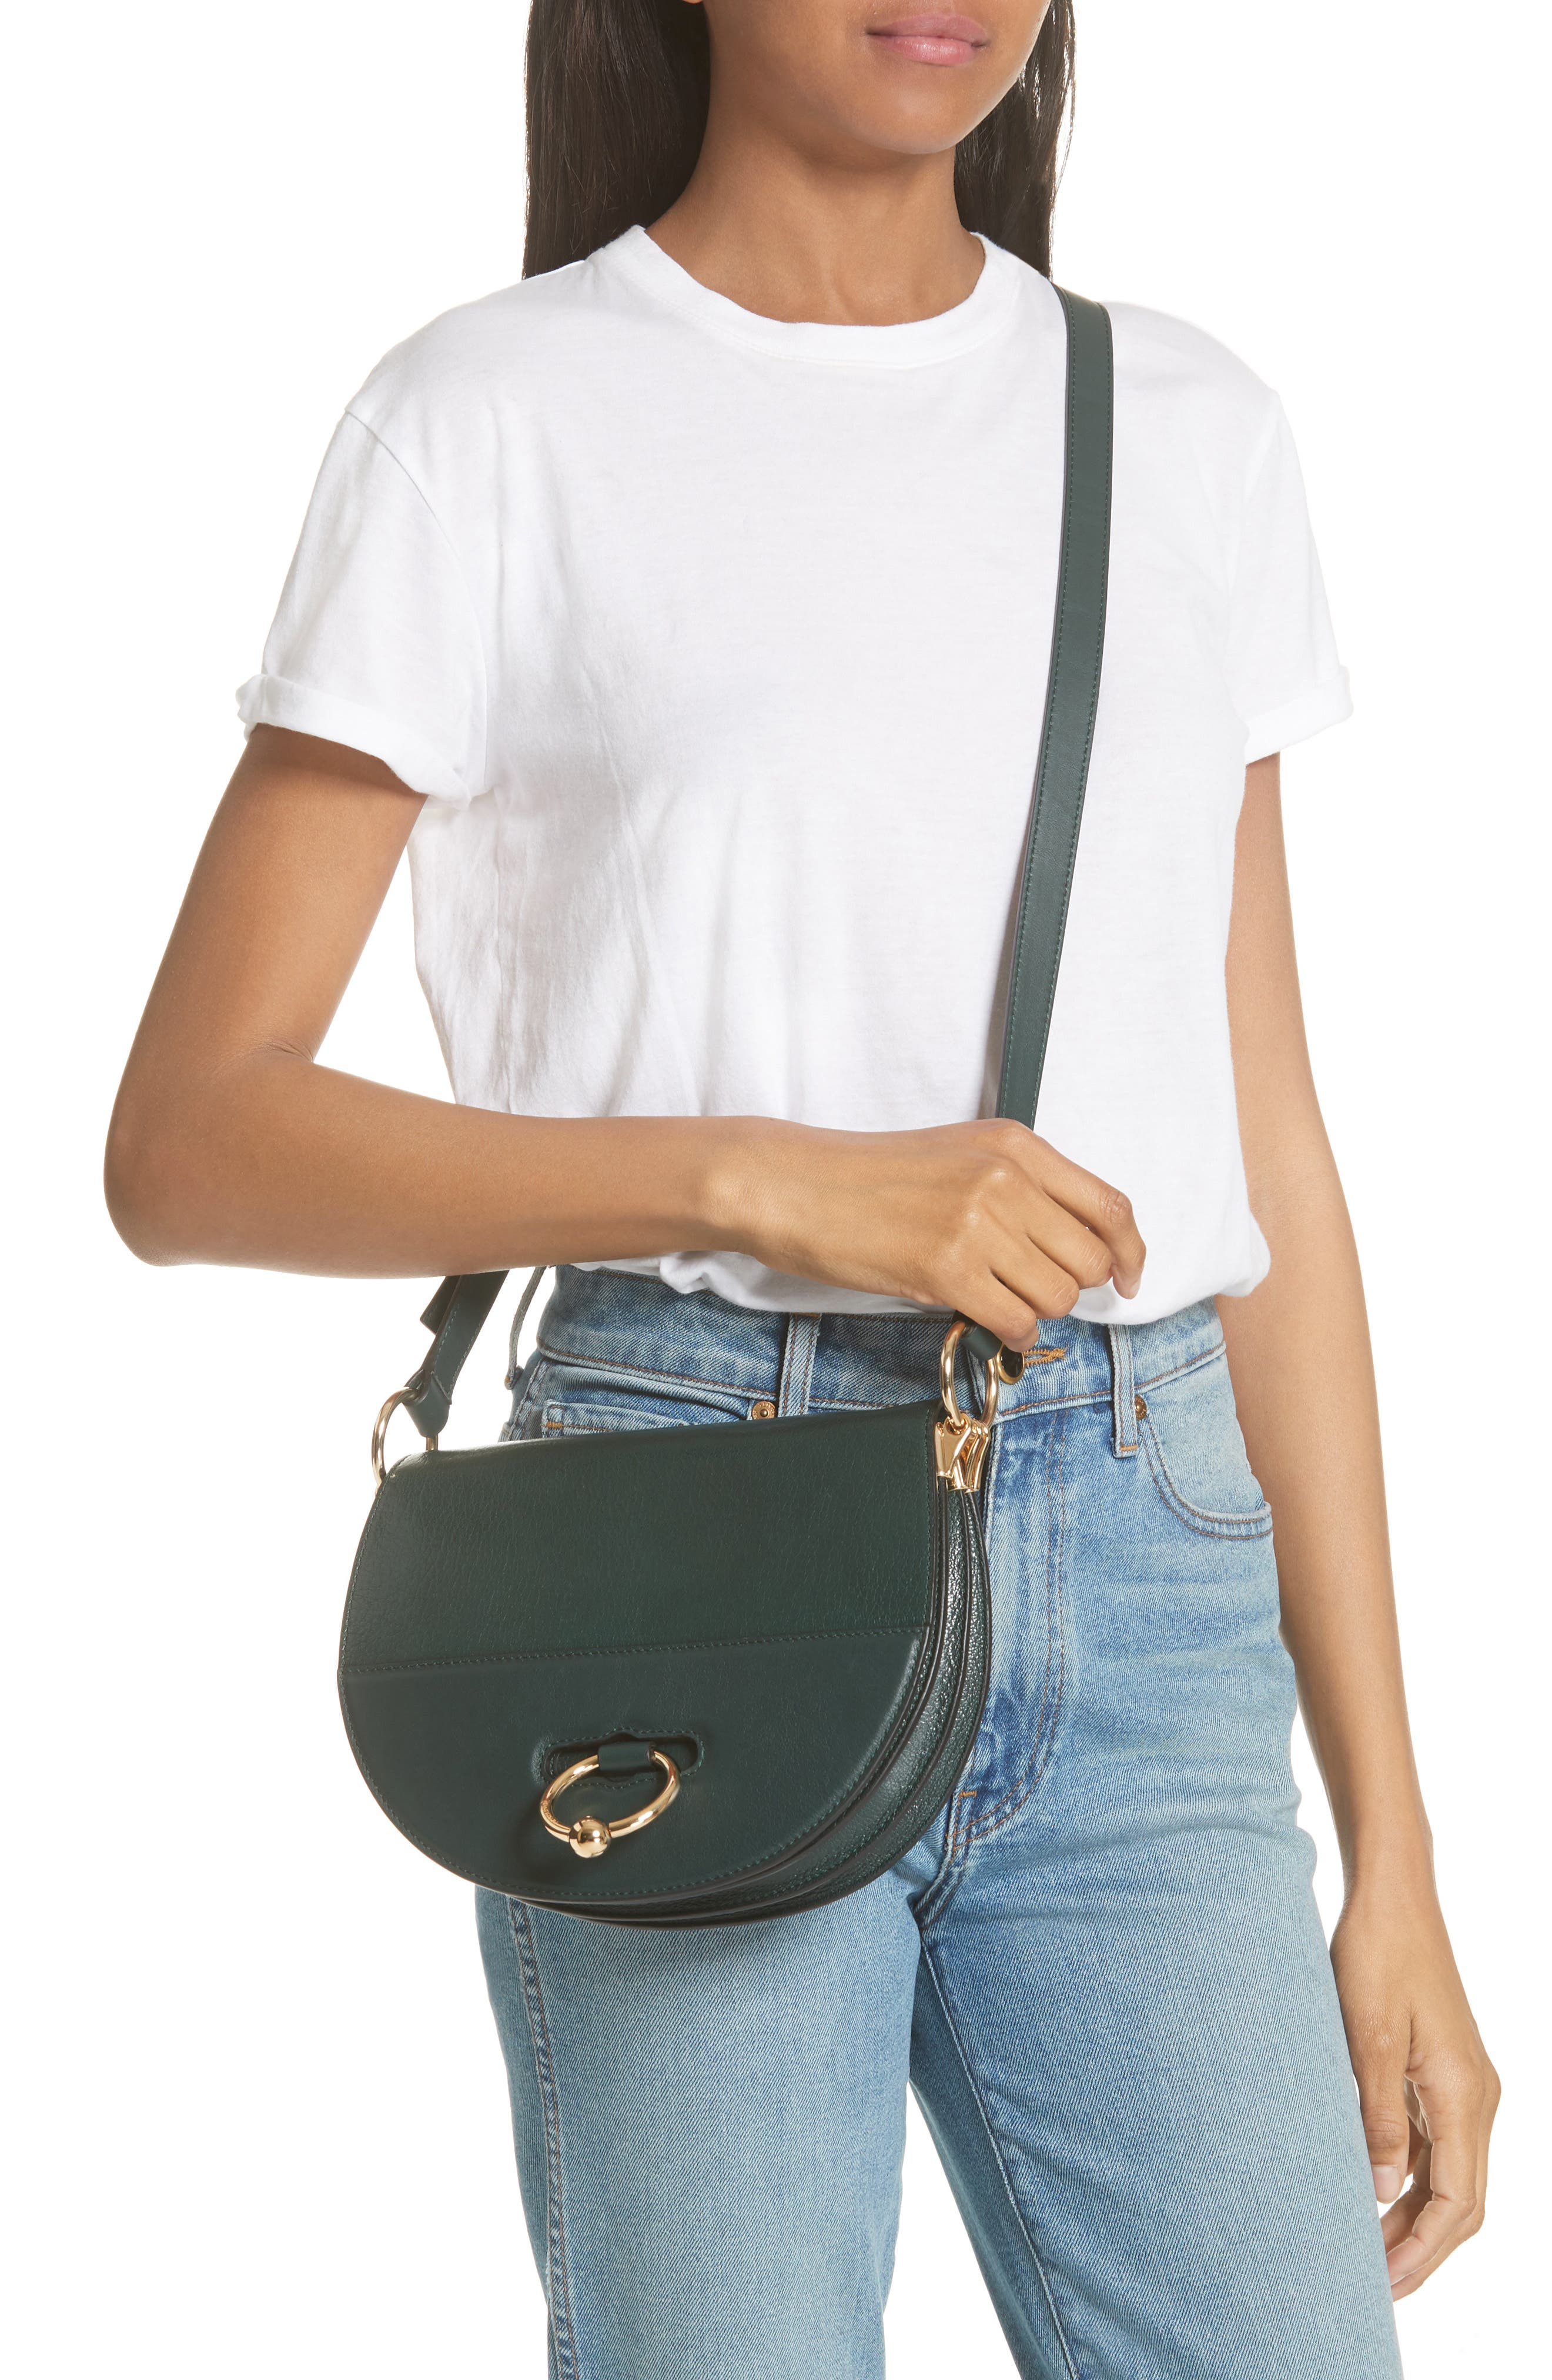 J.W.ANDERSON Latch Crossbody Bag,                             Alternate thumbnail 2, color,                             300